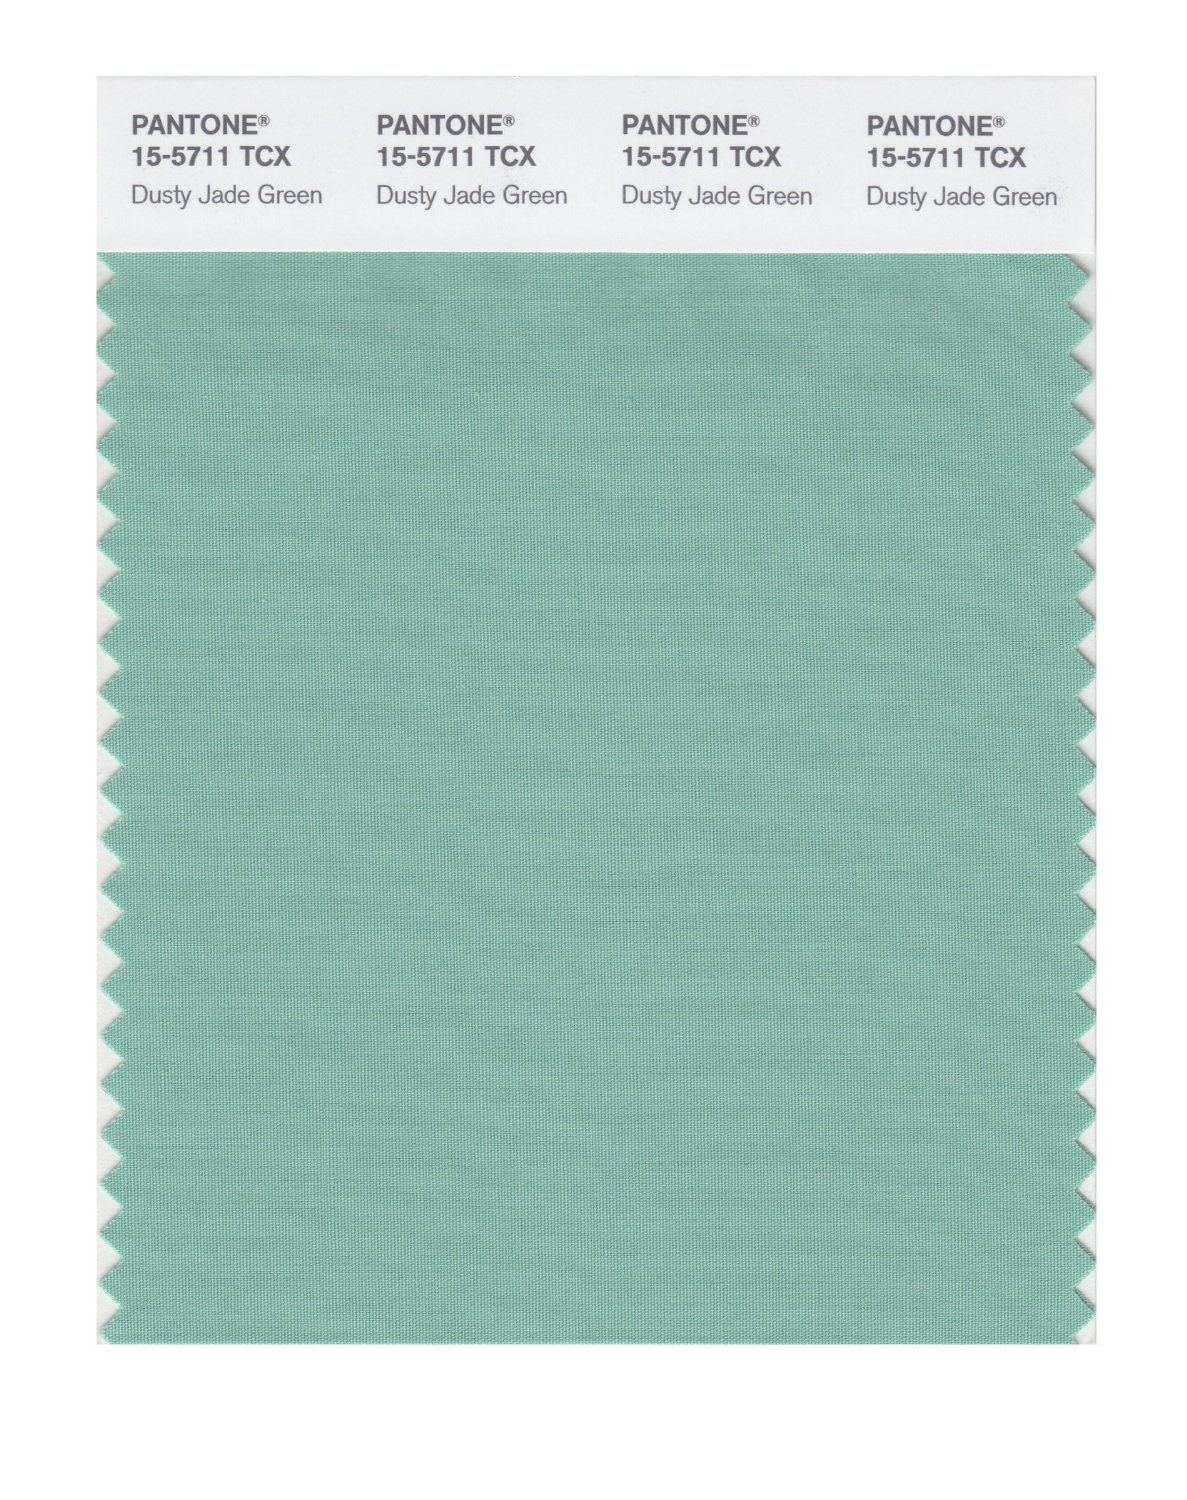 Pantone Smart Swatch 15-5711 Dusty Jade Green